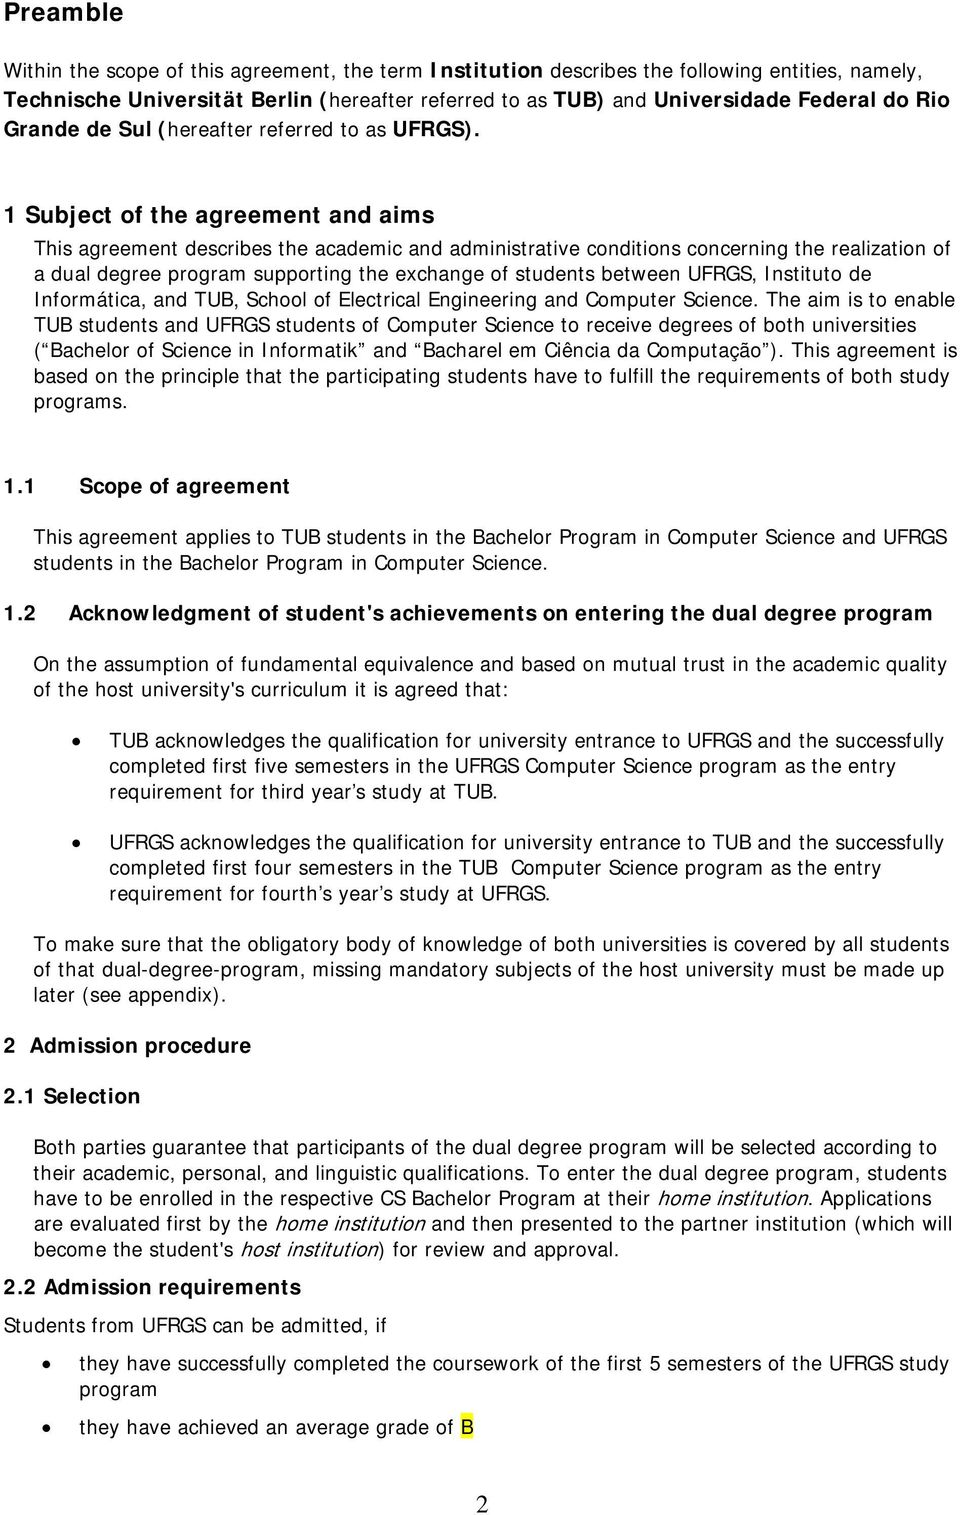 1 Subject of the agreement and aims This agreement describes the academic and administrative conditions concerning the realization of a dual degree program supporting the exchange of students between